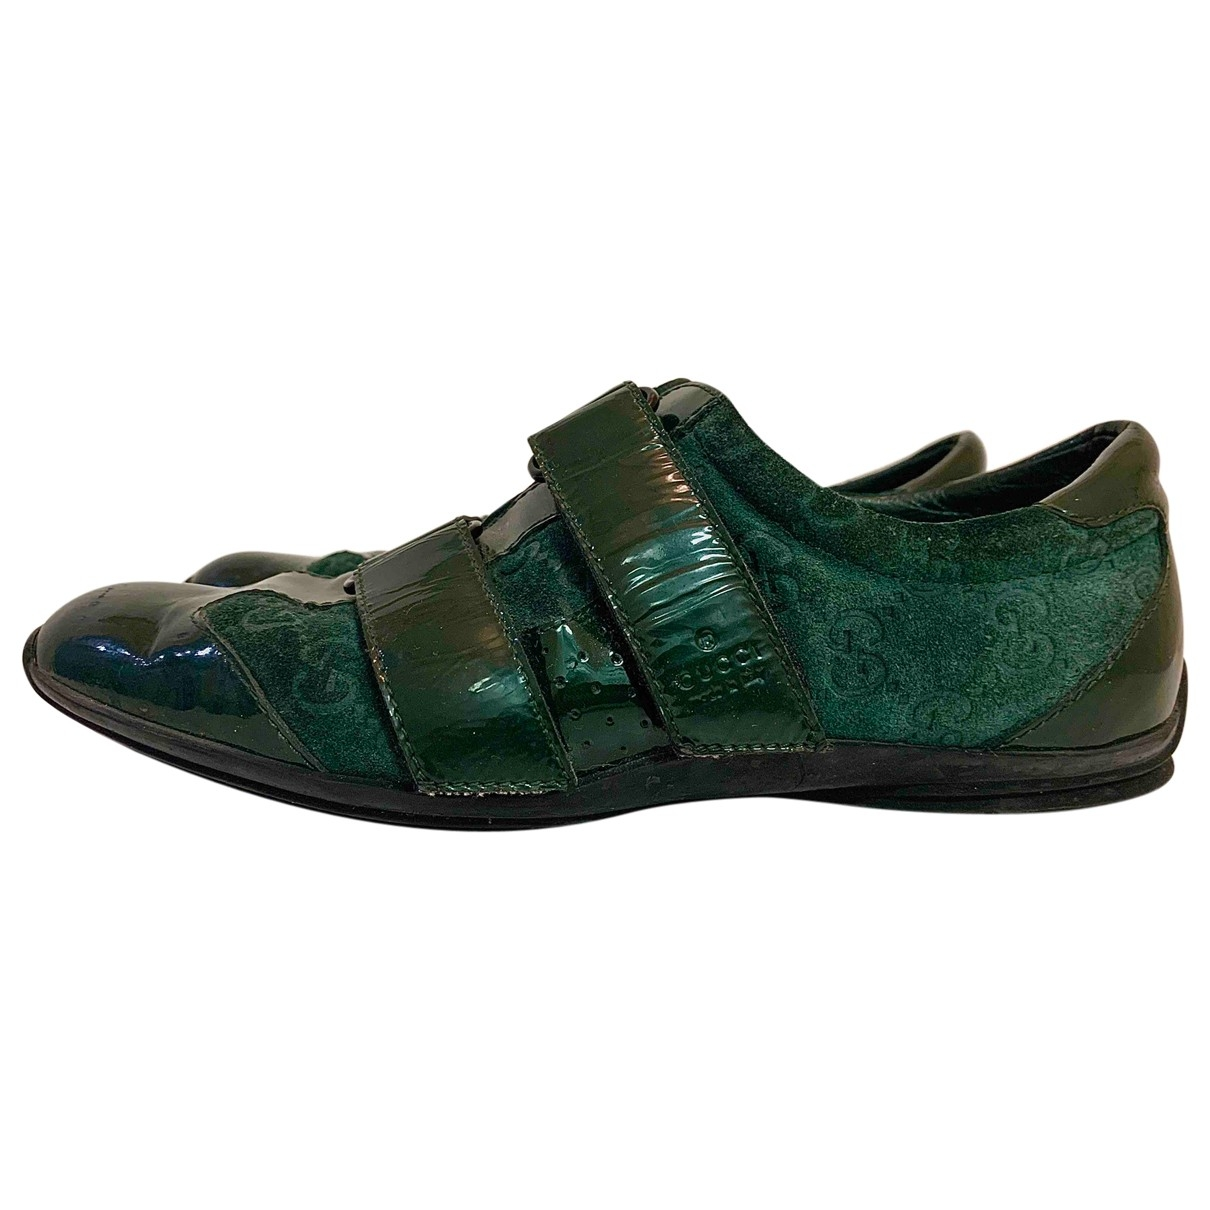 Gucci \N Green Patent leather Trainers for Women 35 EU